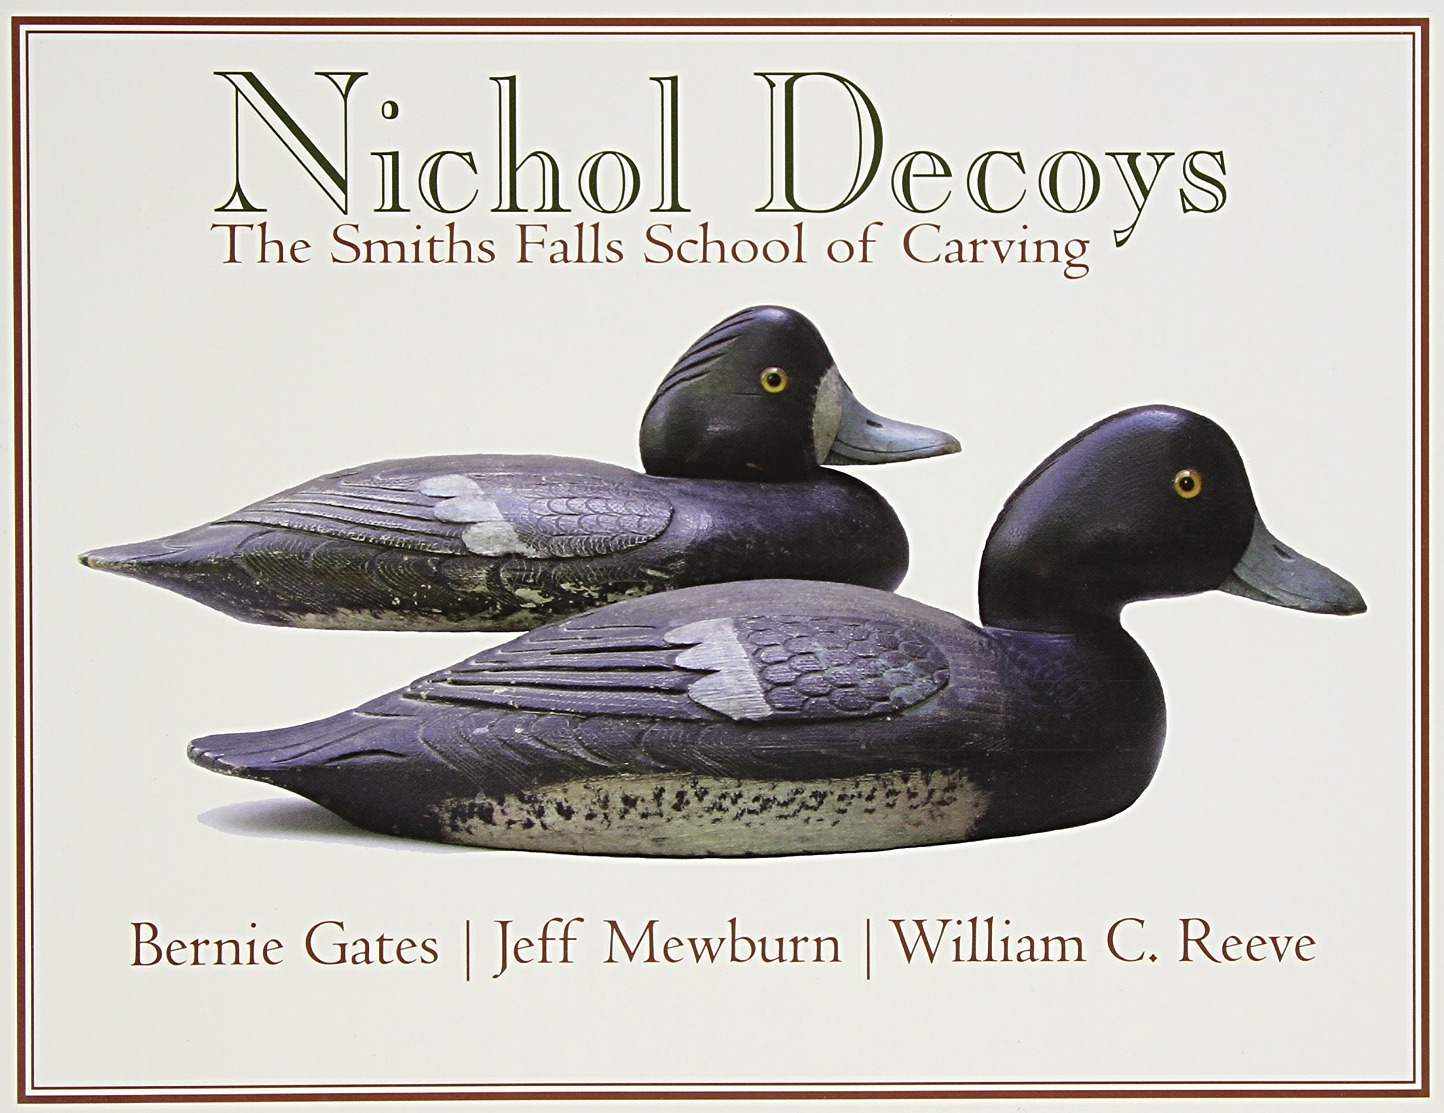 NICHOL DECOYS THE SMITH FALLS SCHOOL